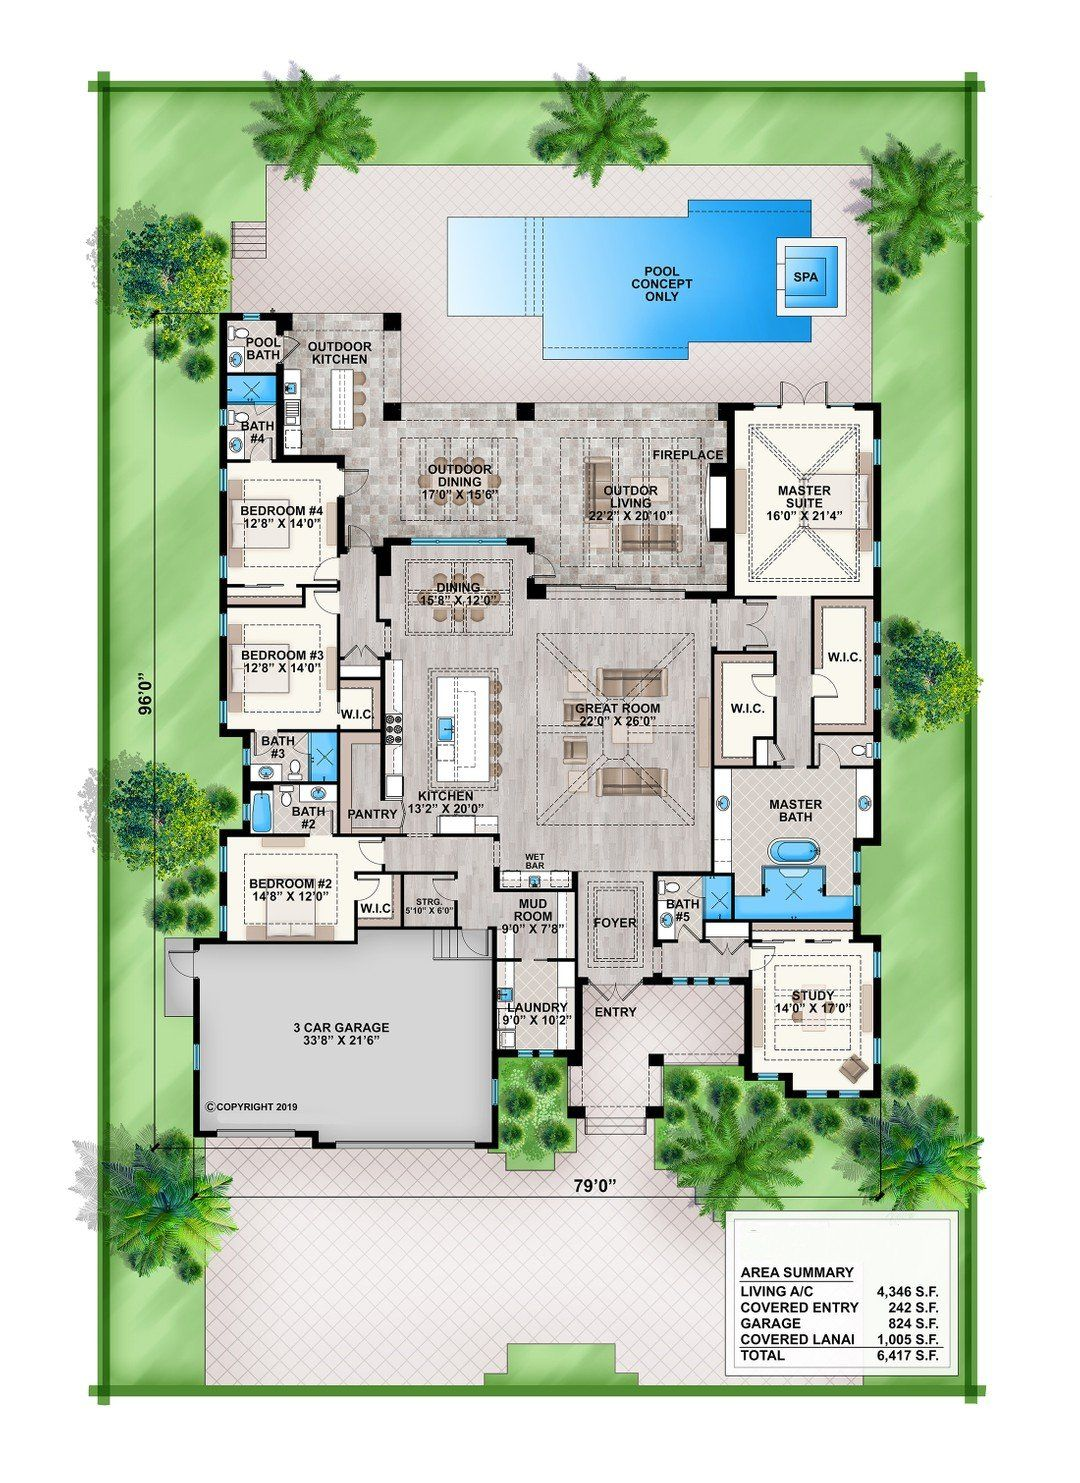 Hpm Home Plans Home Plan 009 4347 Pool House Plans Florida House Plans Coastal House Plans